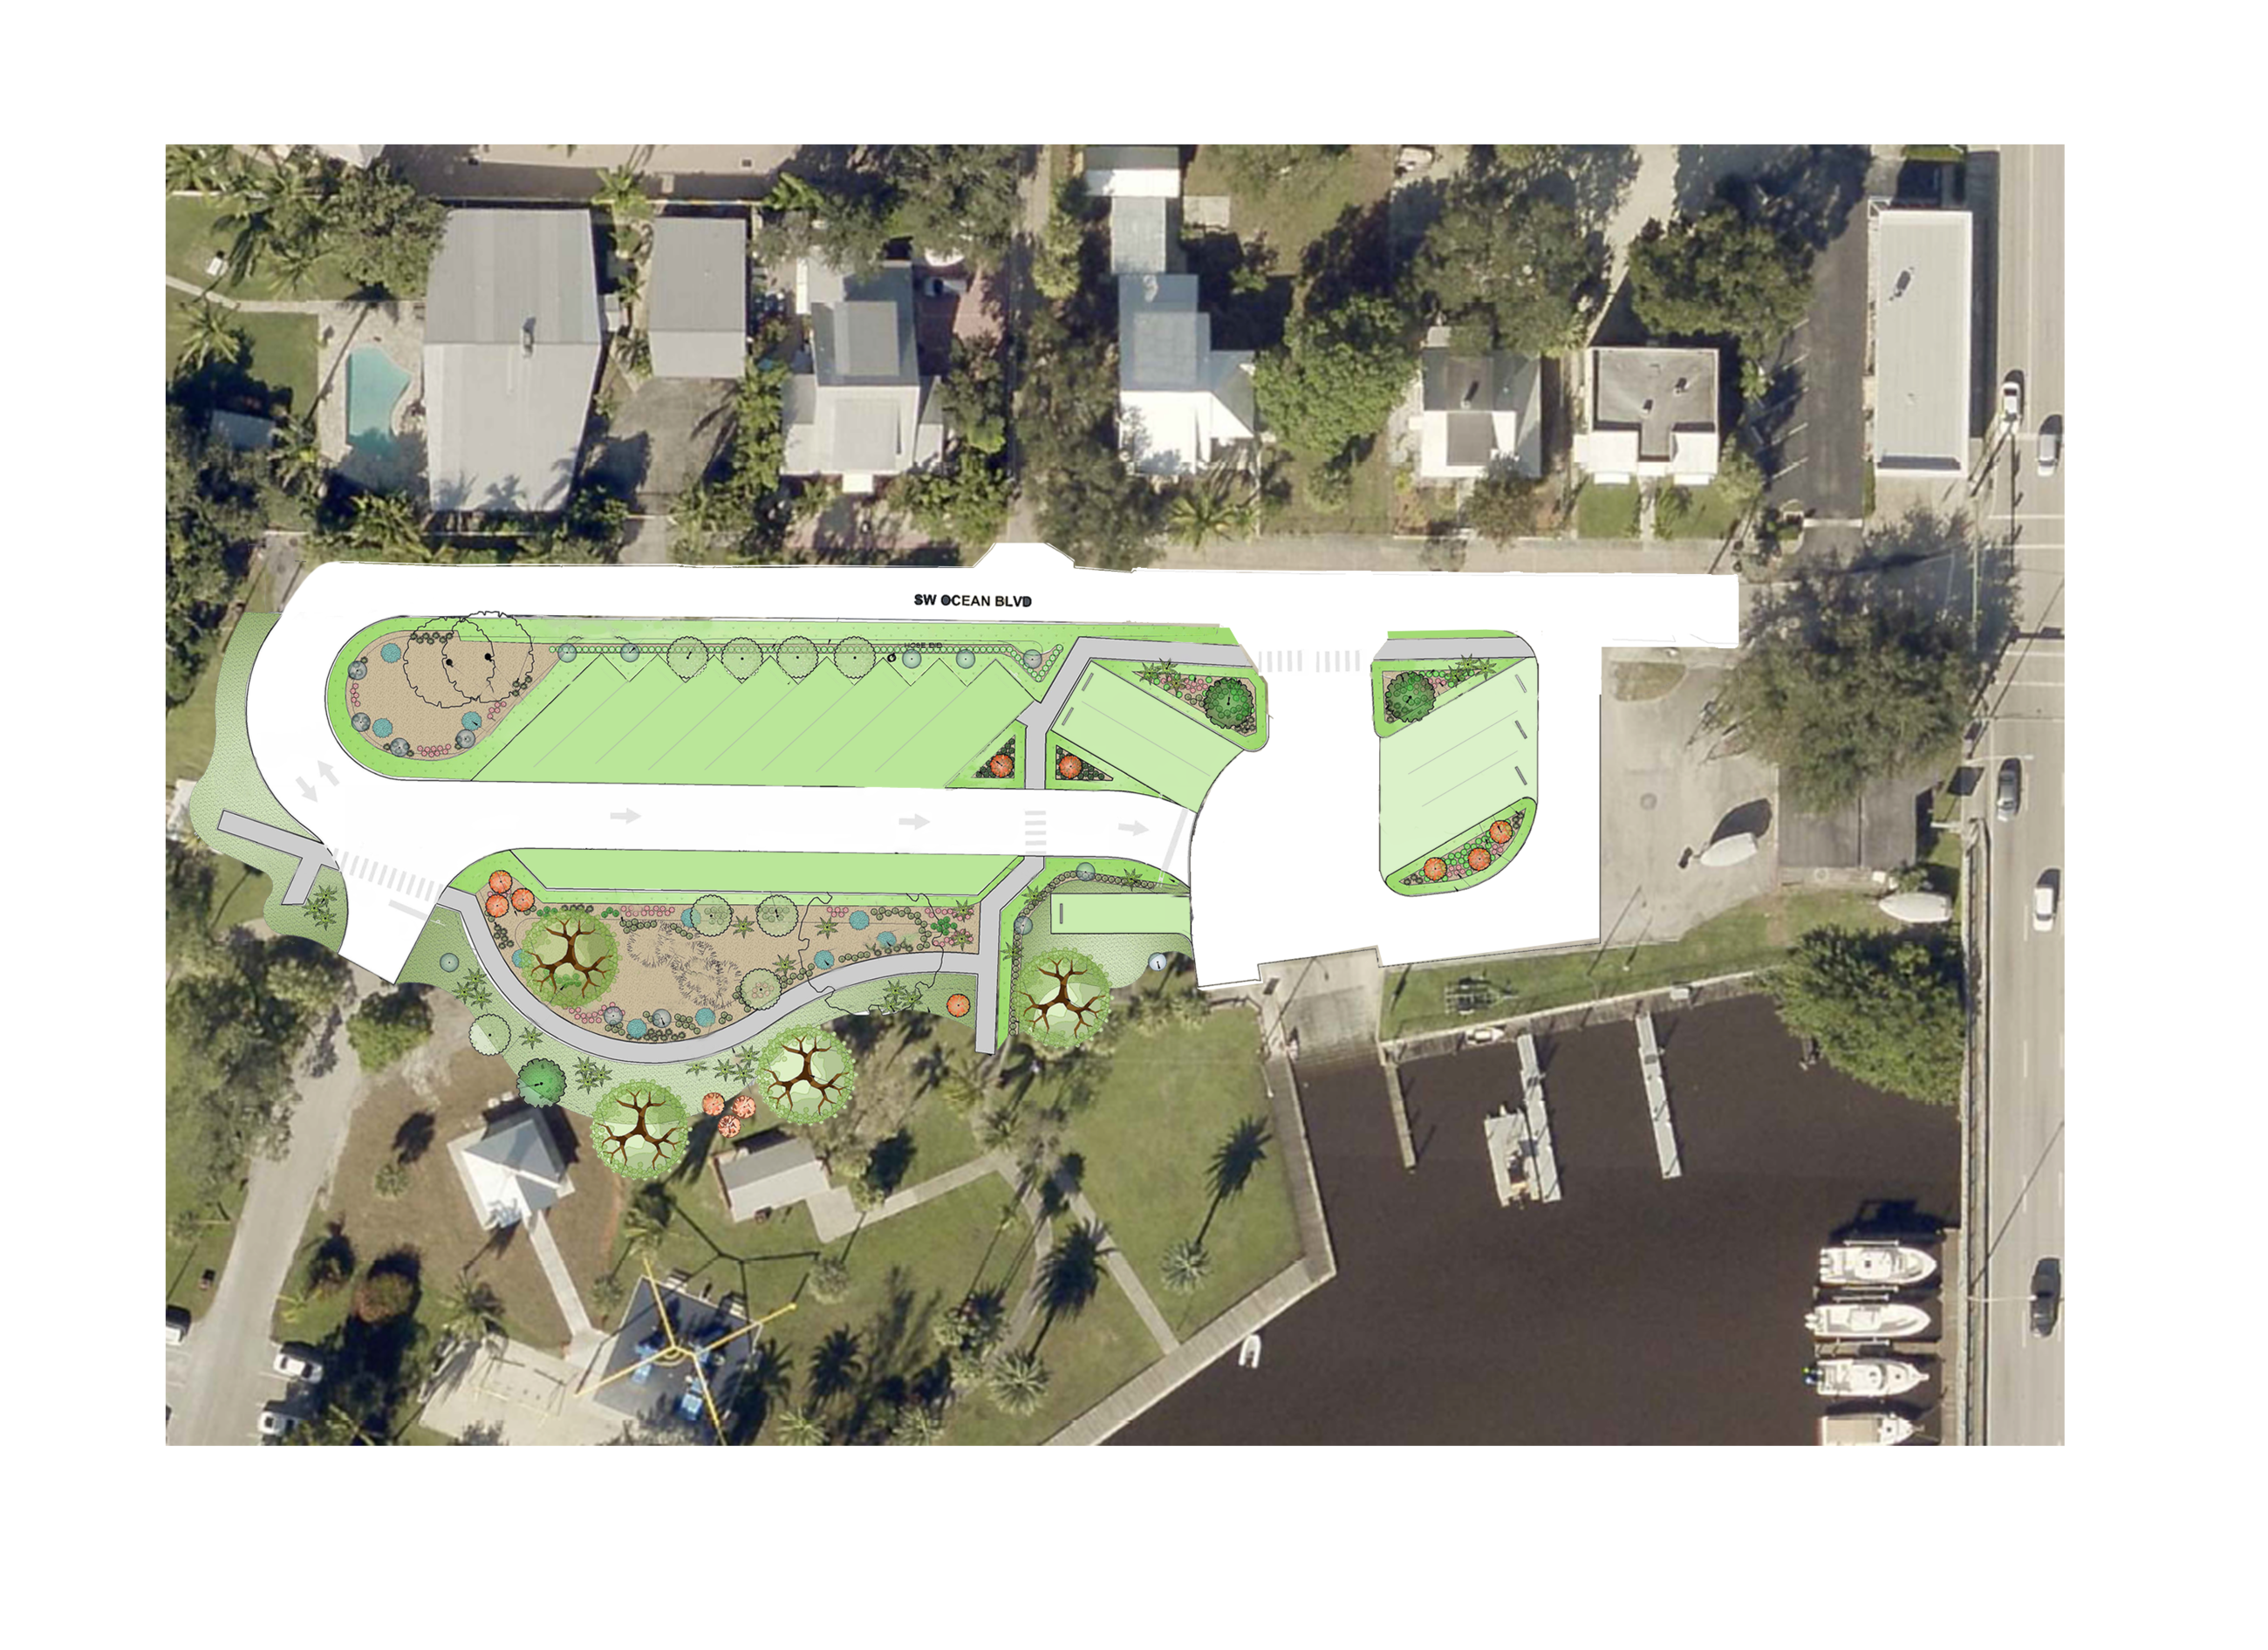 Shepard Park parking improvements map revised